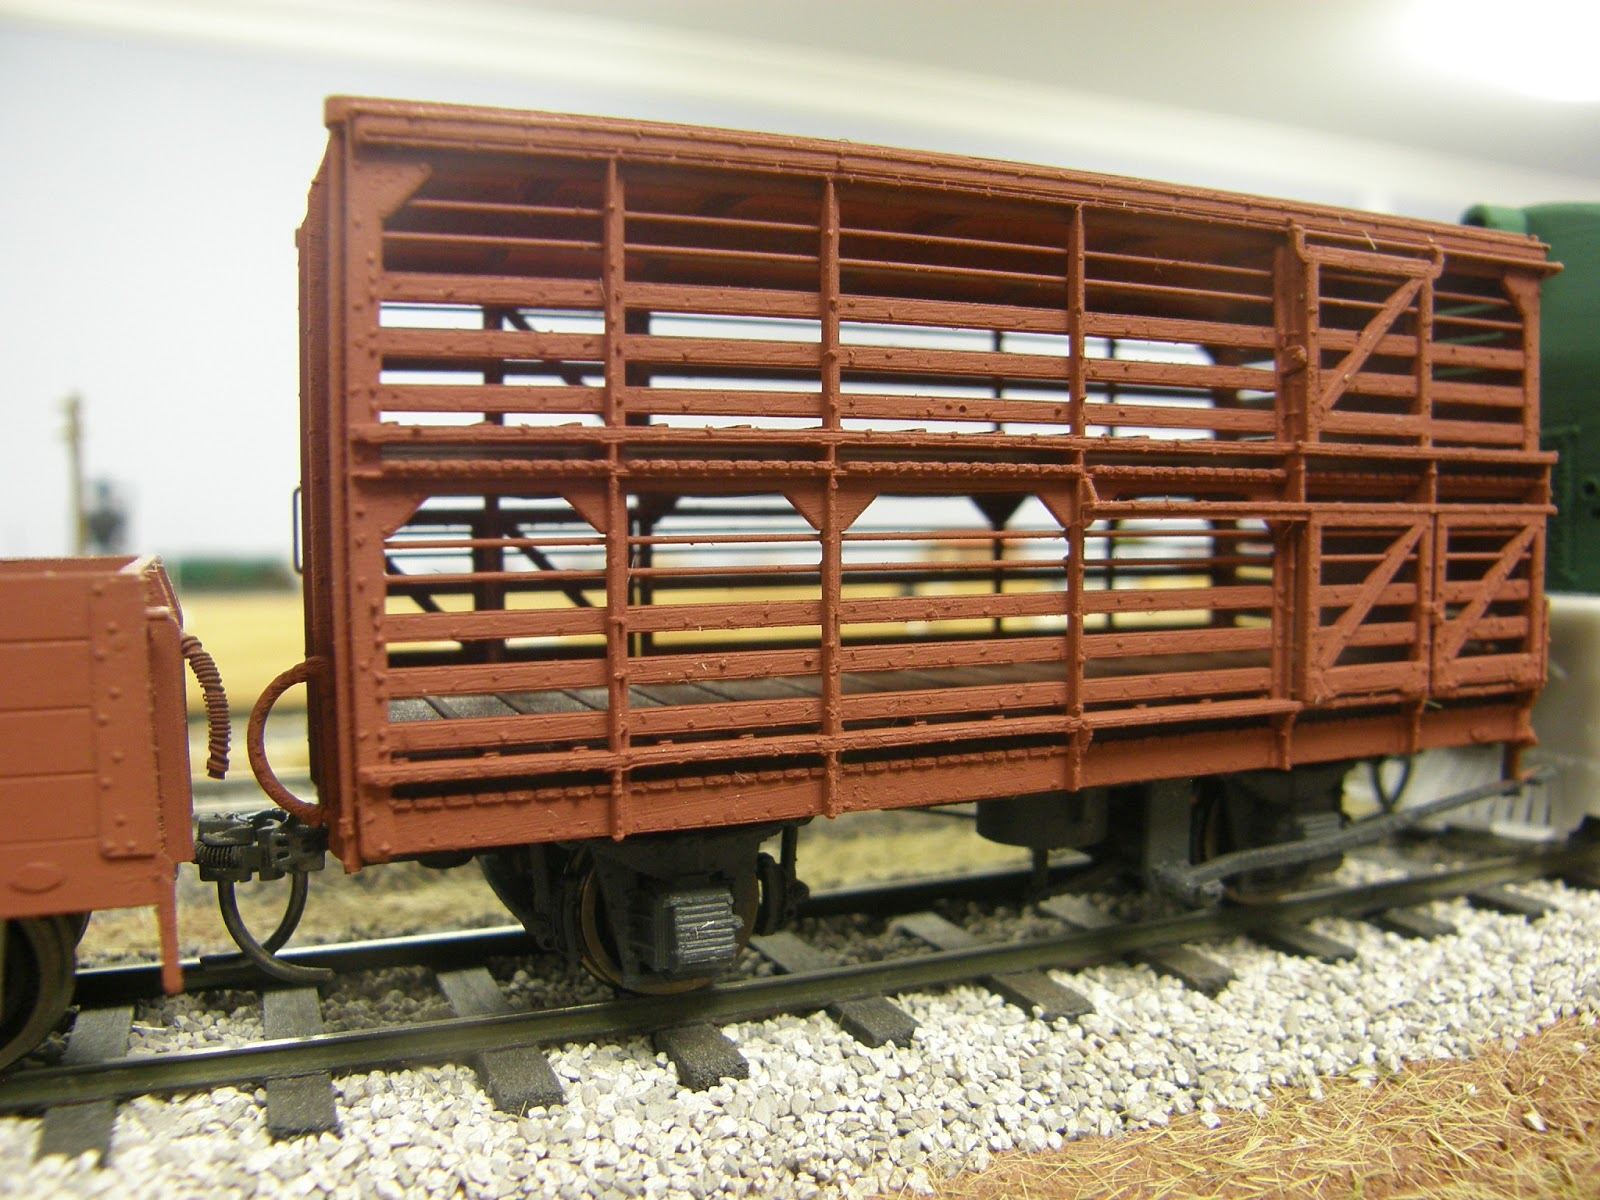 cxb sheep wagon after added detailing and painting